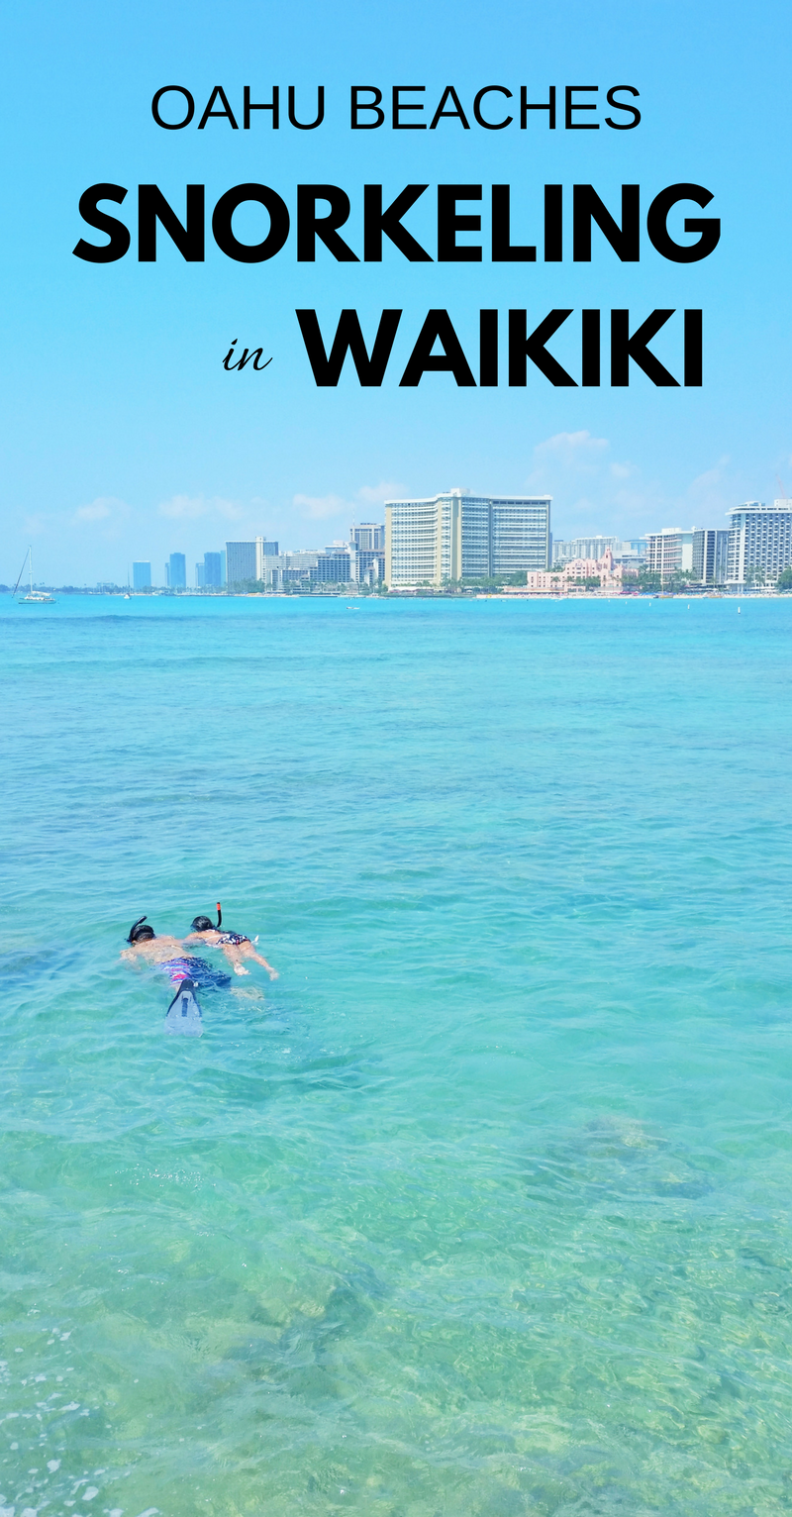 One Of The Best Beaches In Waikiki For Snorkeling Us Oahu Hawaii Activities Like Swimming And At Queen S Beach On